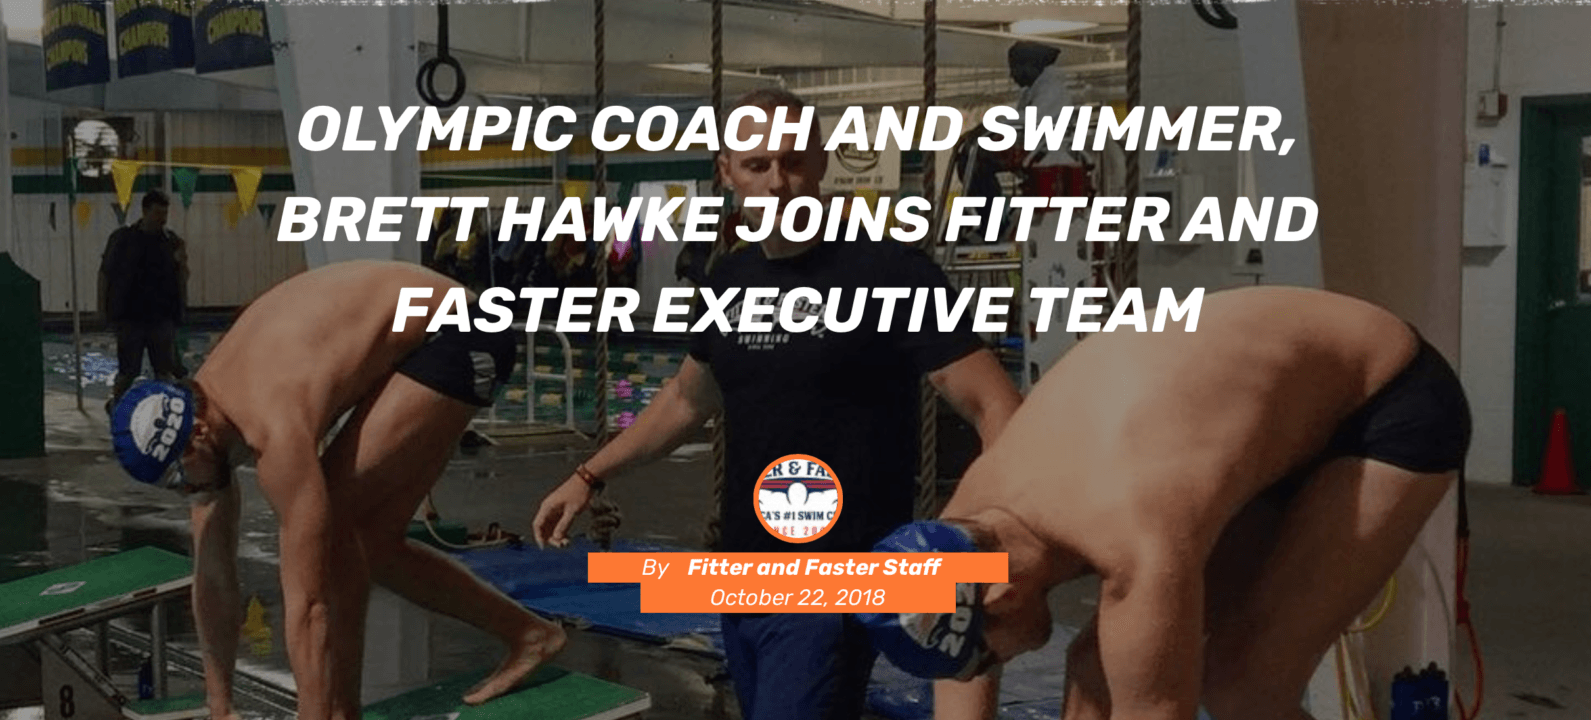 Olympic Coach and Swimmer, Brett Hawke Joins Fitter and Faster Executive Team